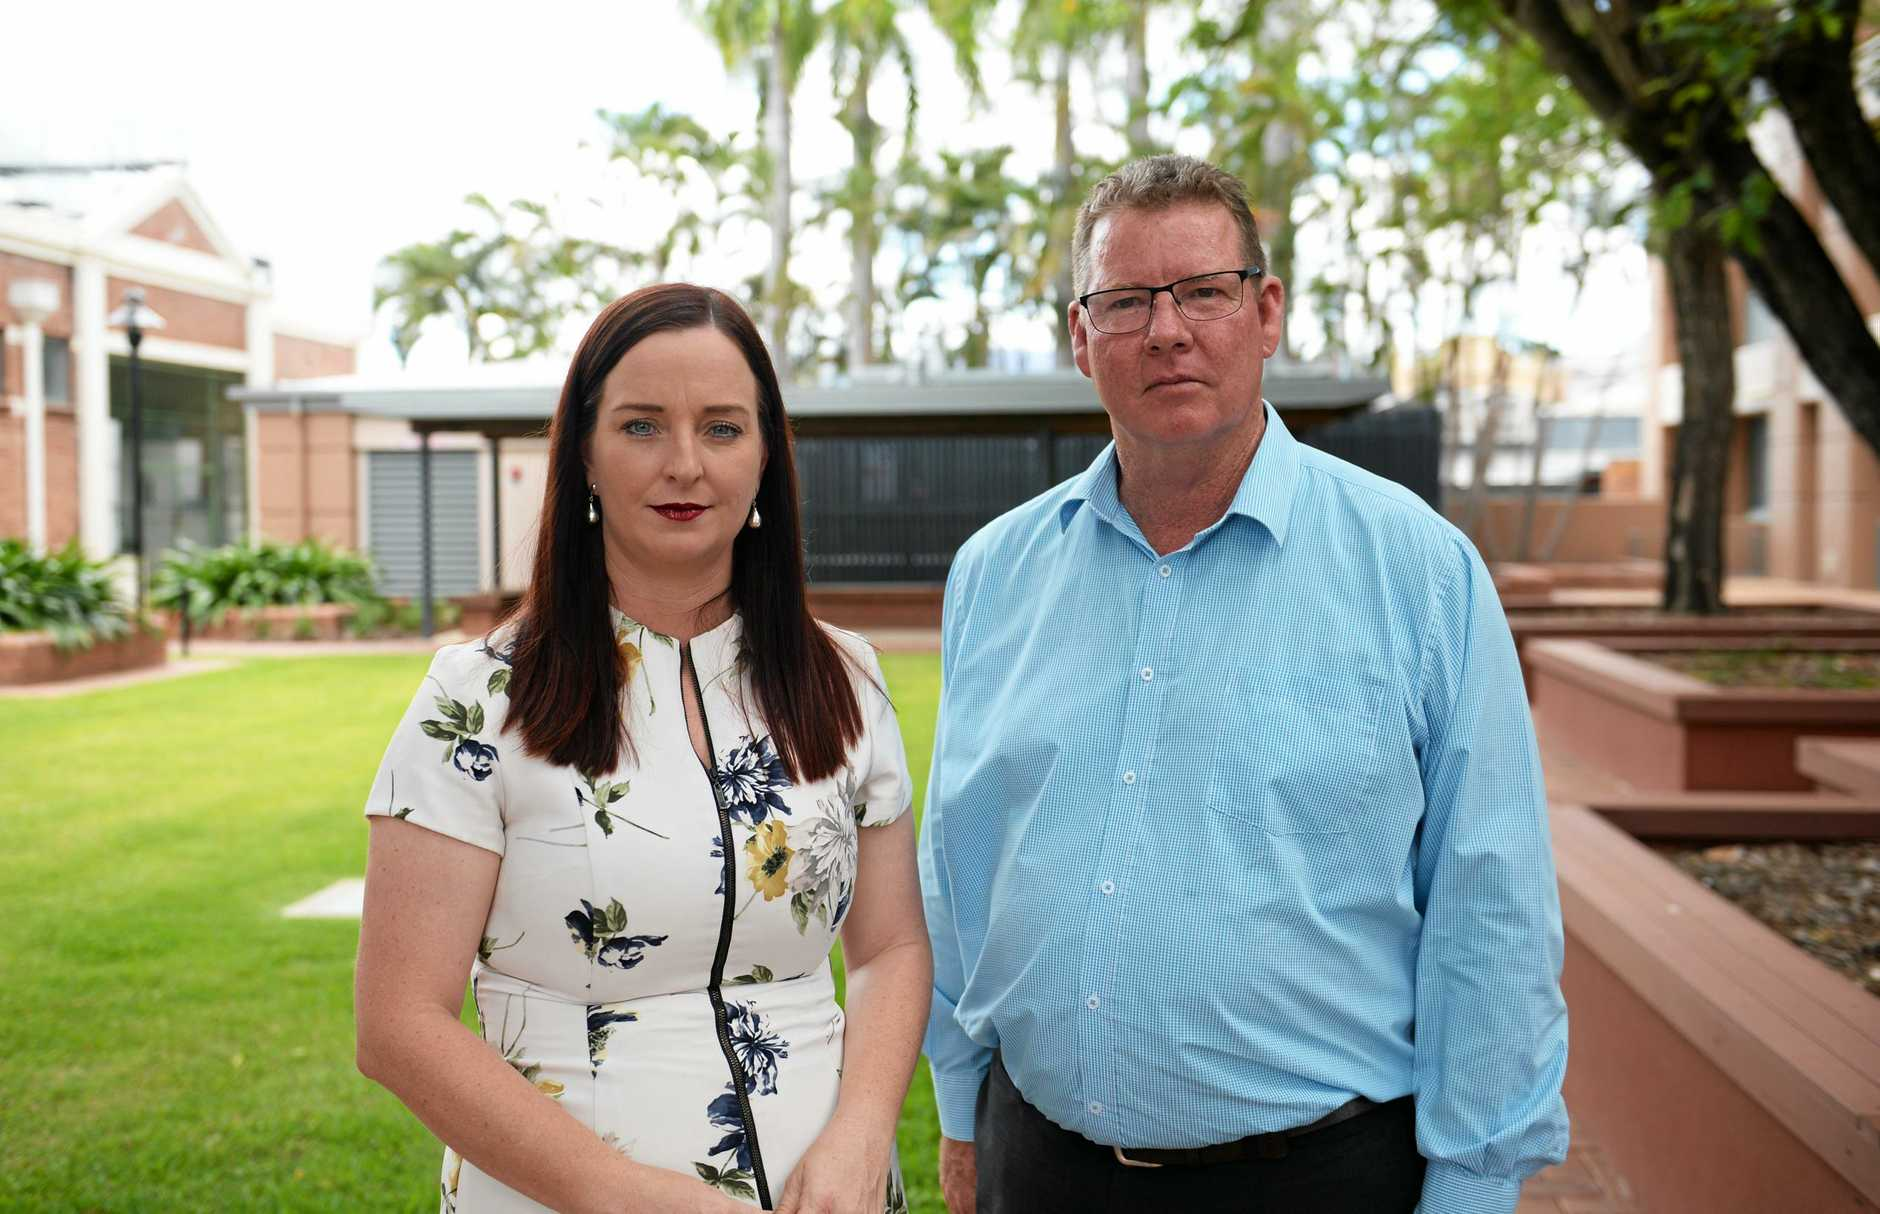 The Member for Keppel and Assistant Education Minister Brittan Lauga and the Member for Rockhampton Barry O'Rourke will met with JM Kelly workers at a jobs expo following the collapse of that company.